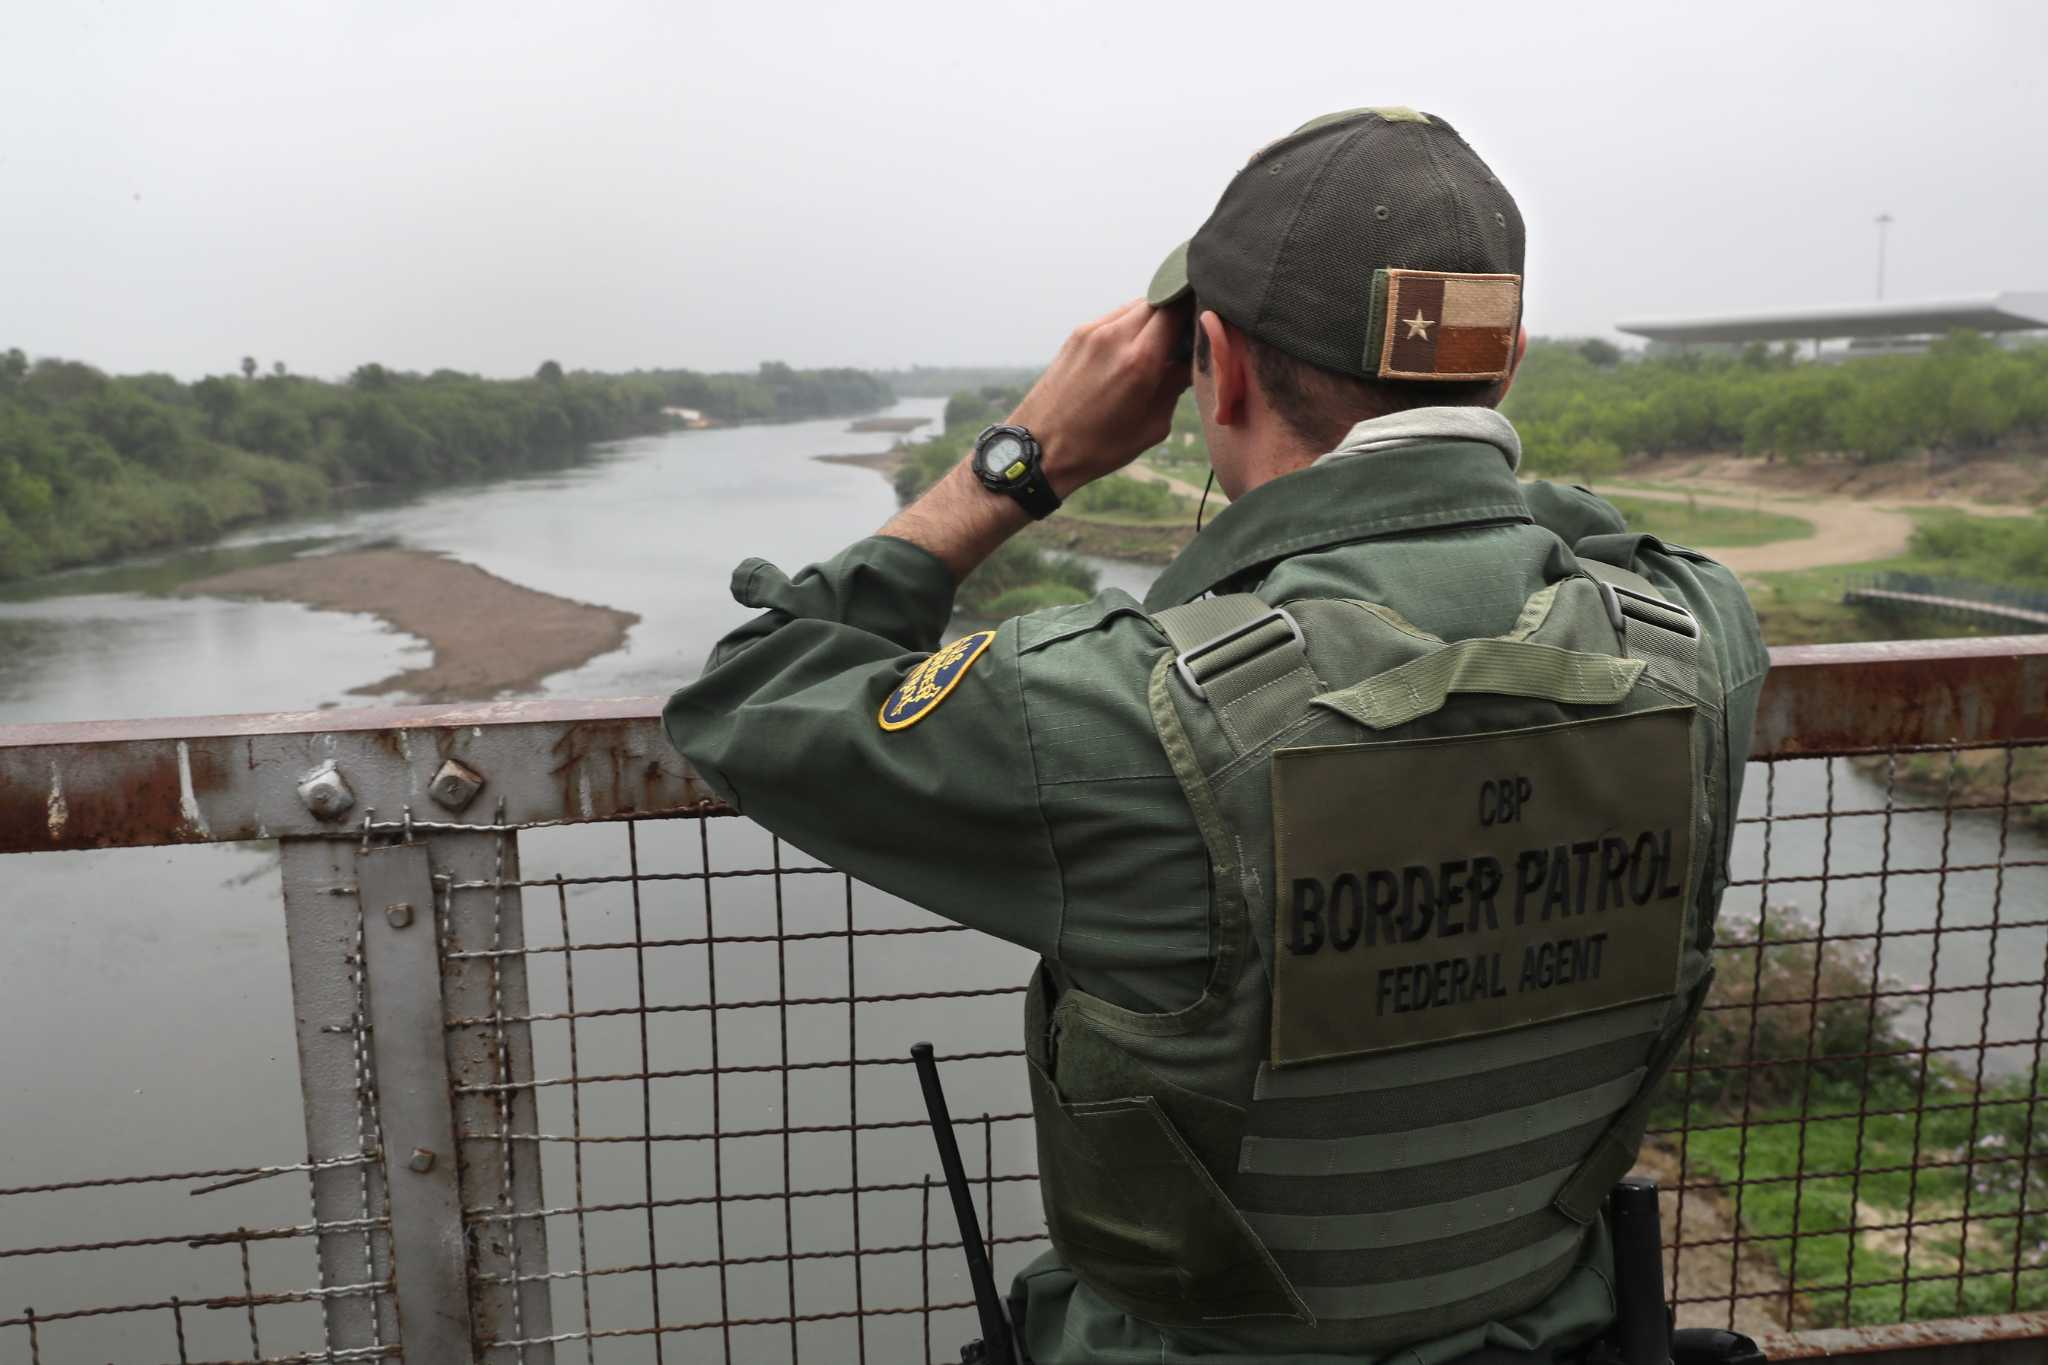 U S Border Patrol Agent Dies From Injuries Suffered While